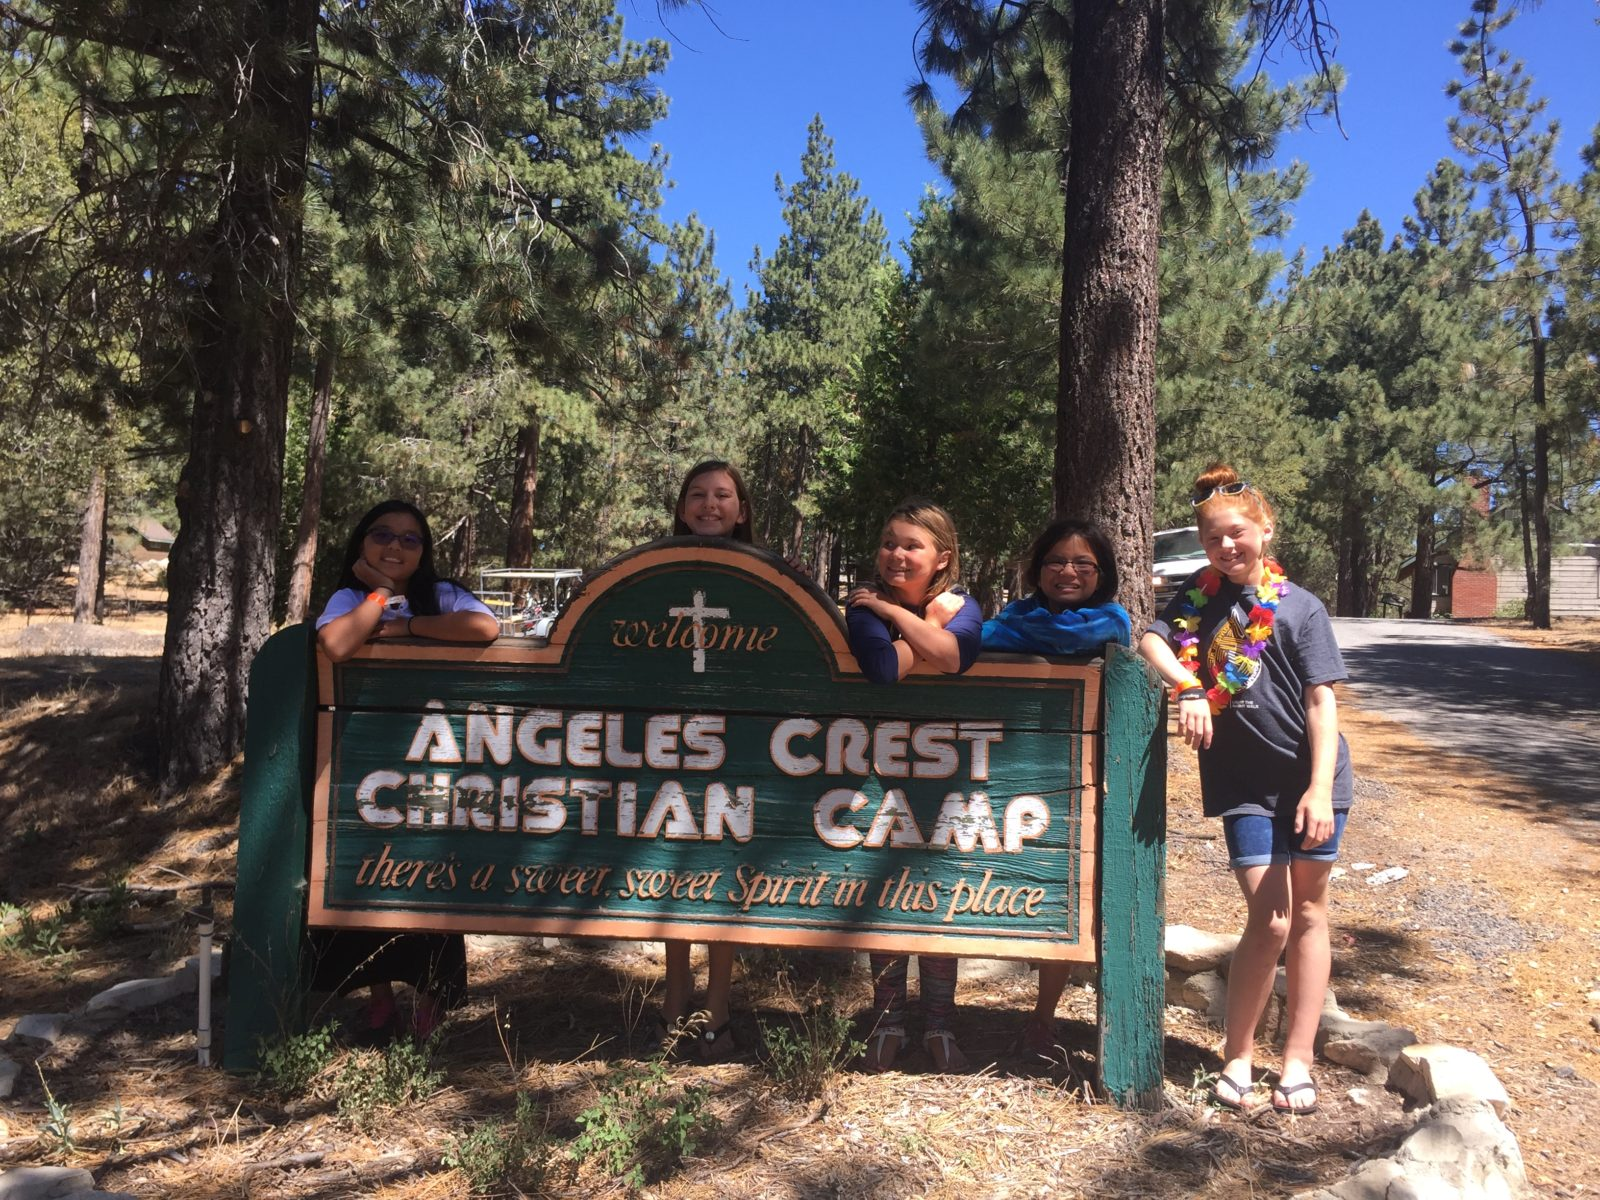 club-56-camp-angeles-crest-camp-sign